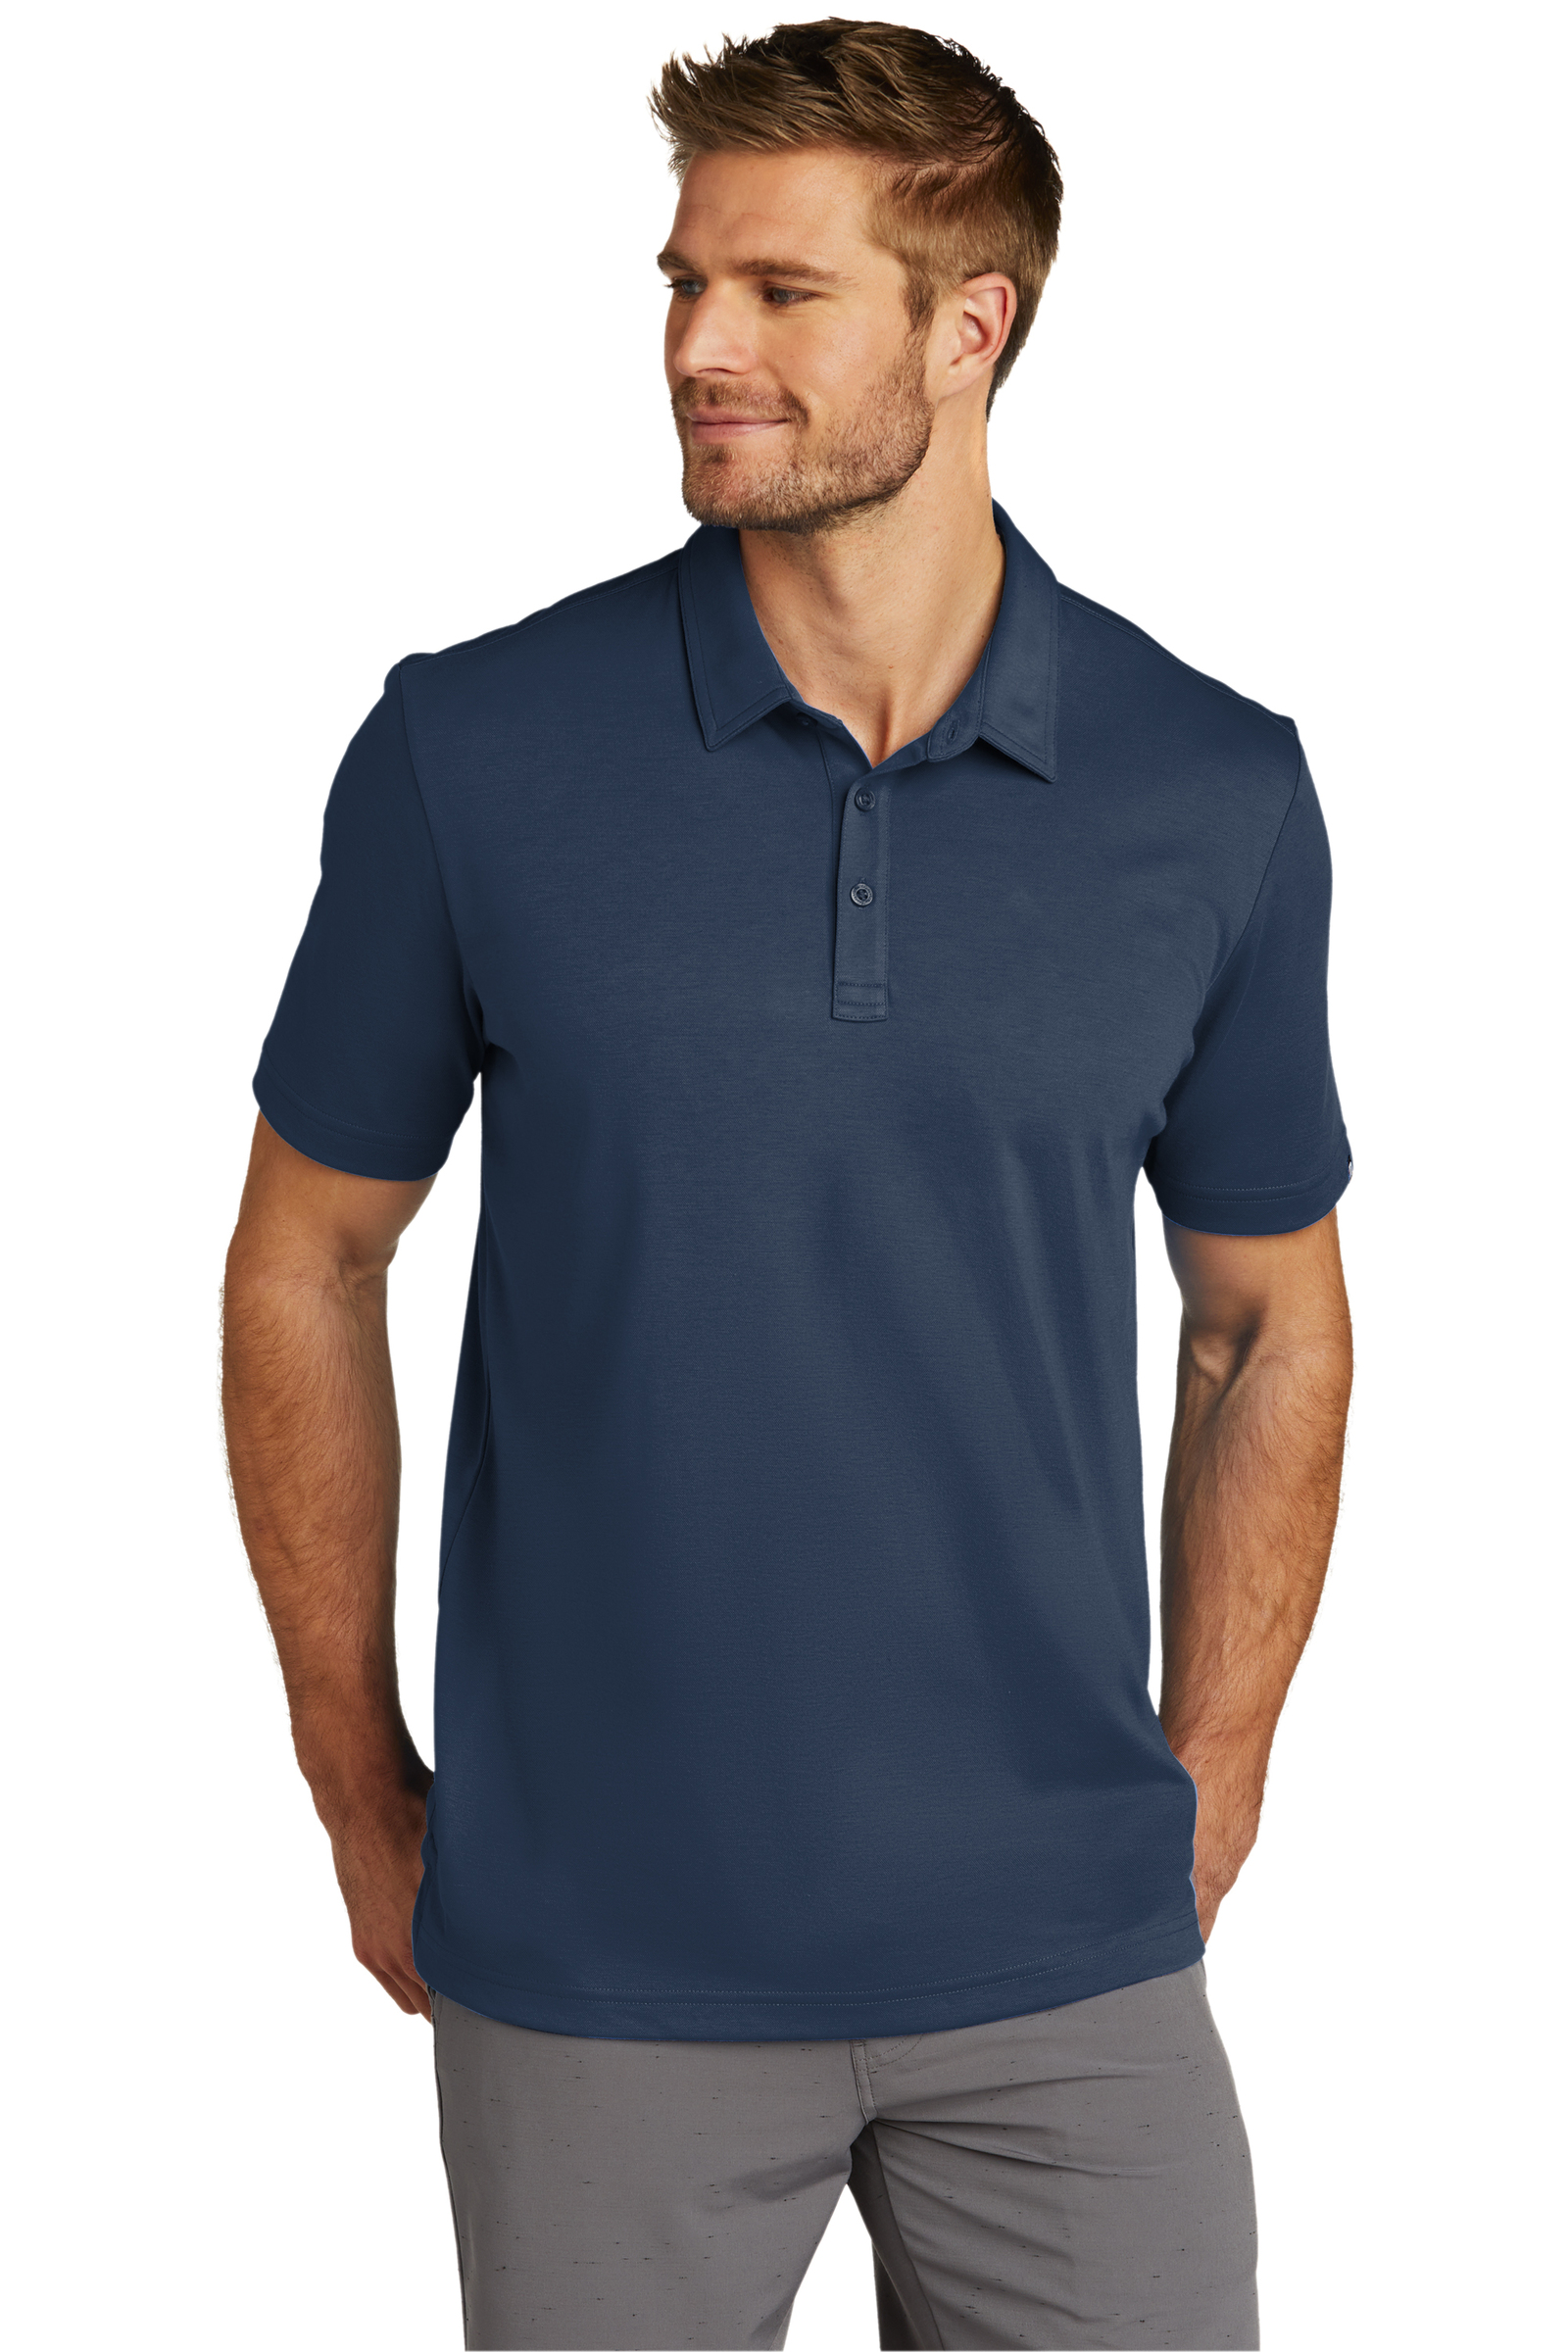 TravisMathew Embroidered Men's Oceanside Solid Polo